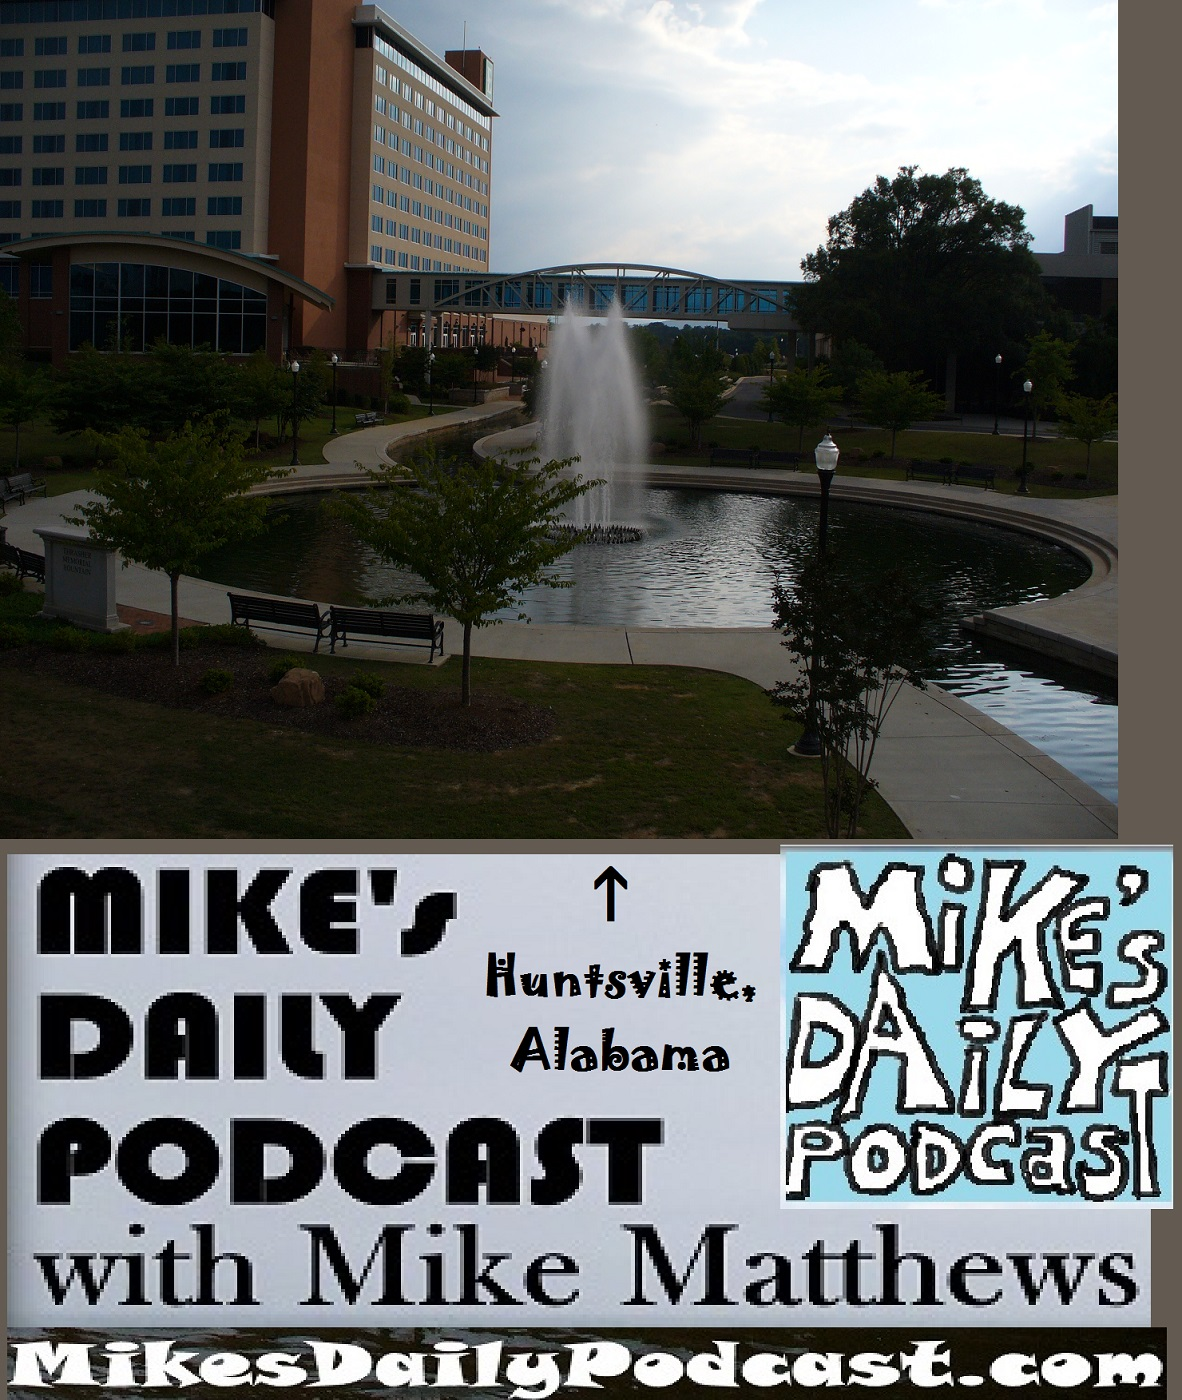 MIKEs DAILY PODCAST 1097 Huntsville Alabama